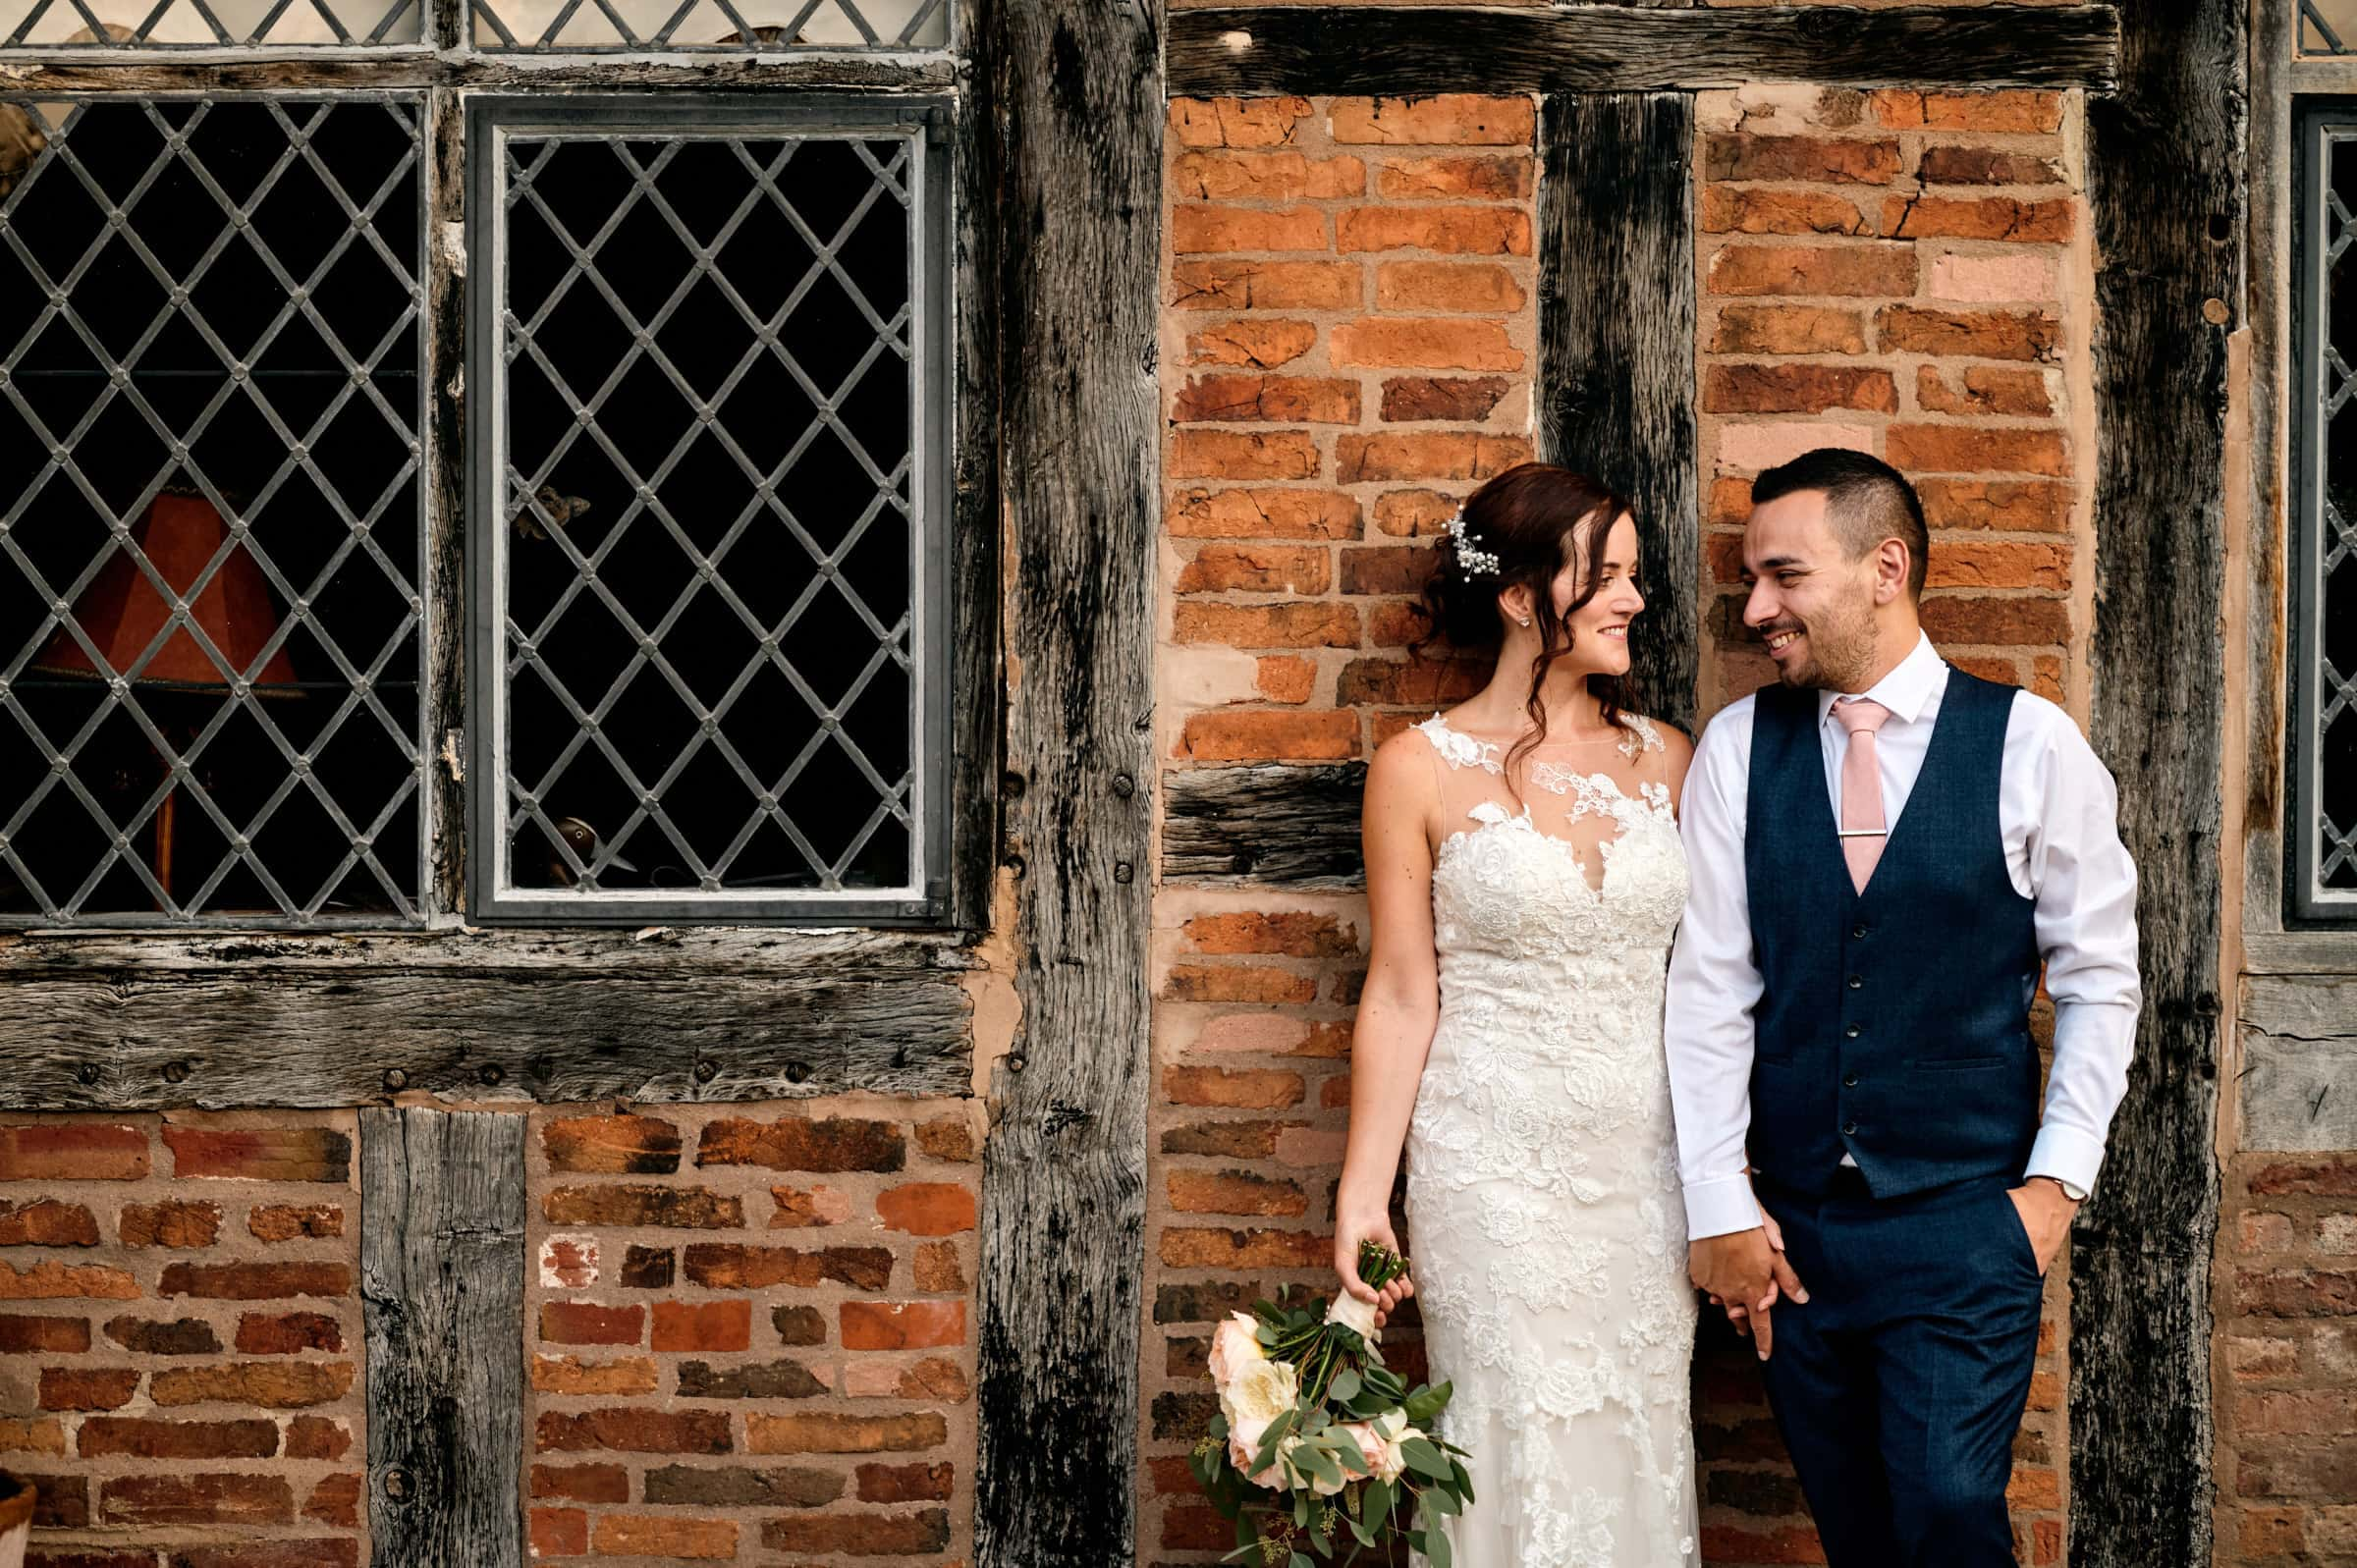 Bride and groom quiet moment leaning against old brick wall